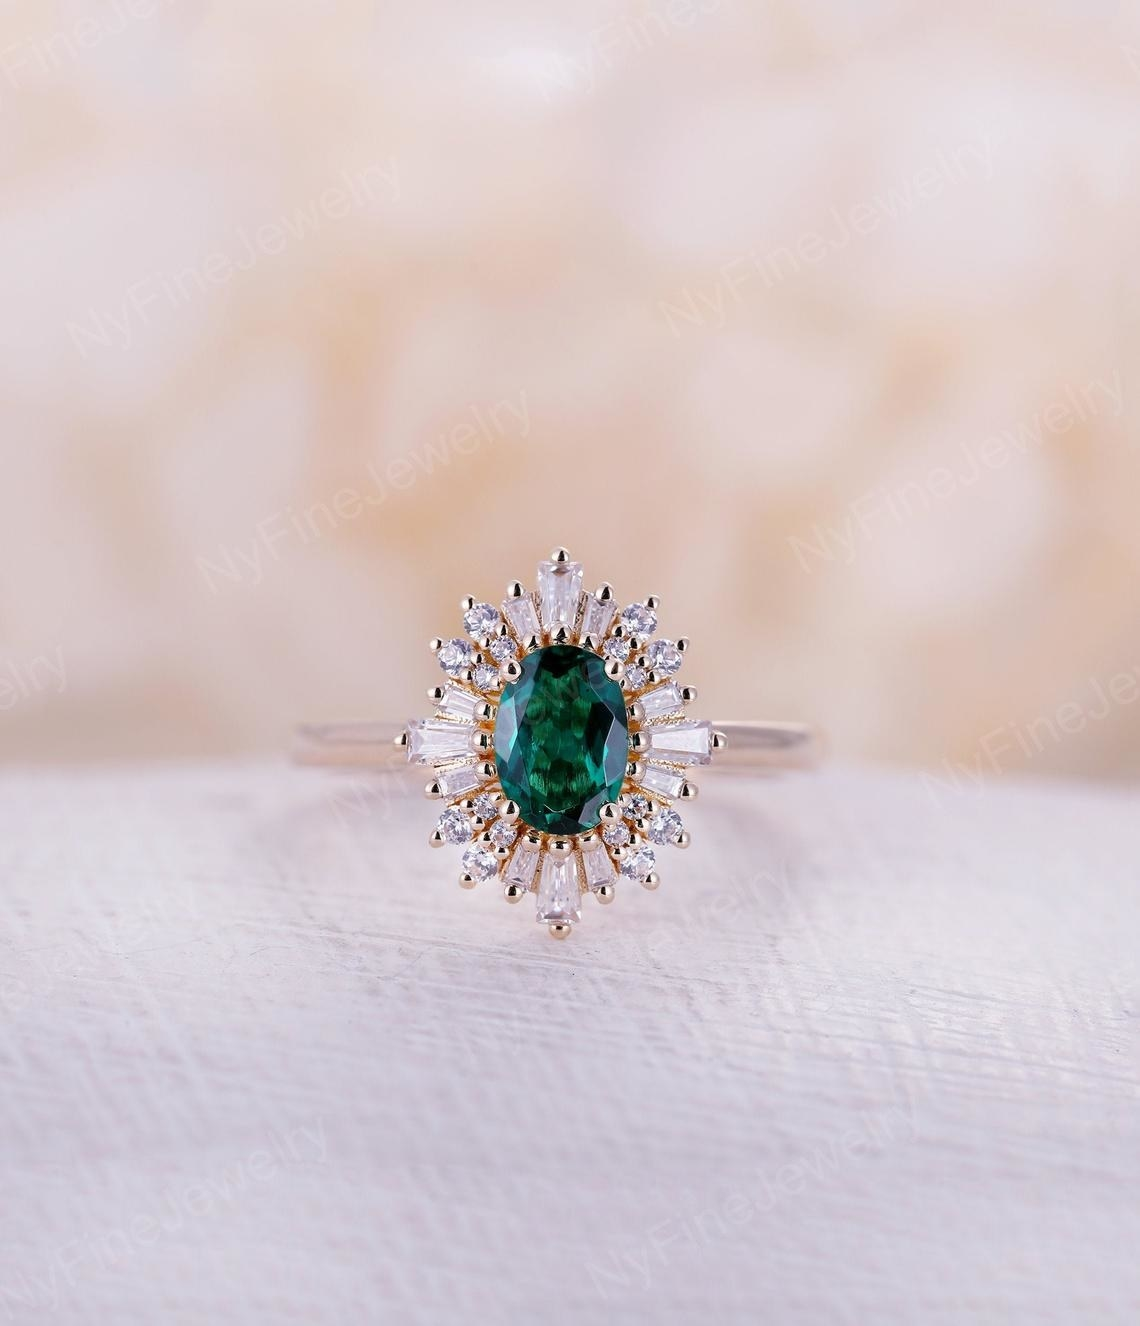 round emerald surrounded by baguette cut stones around the whole thing